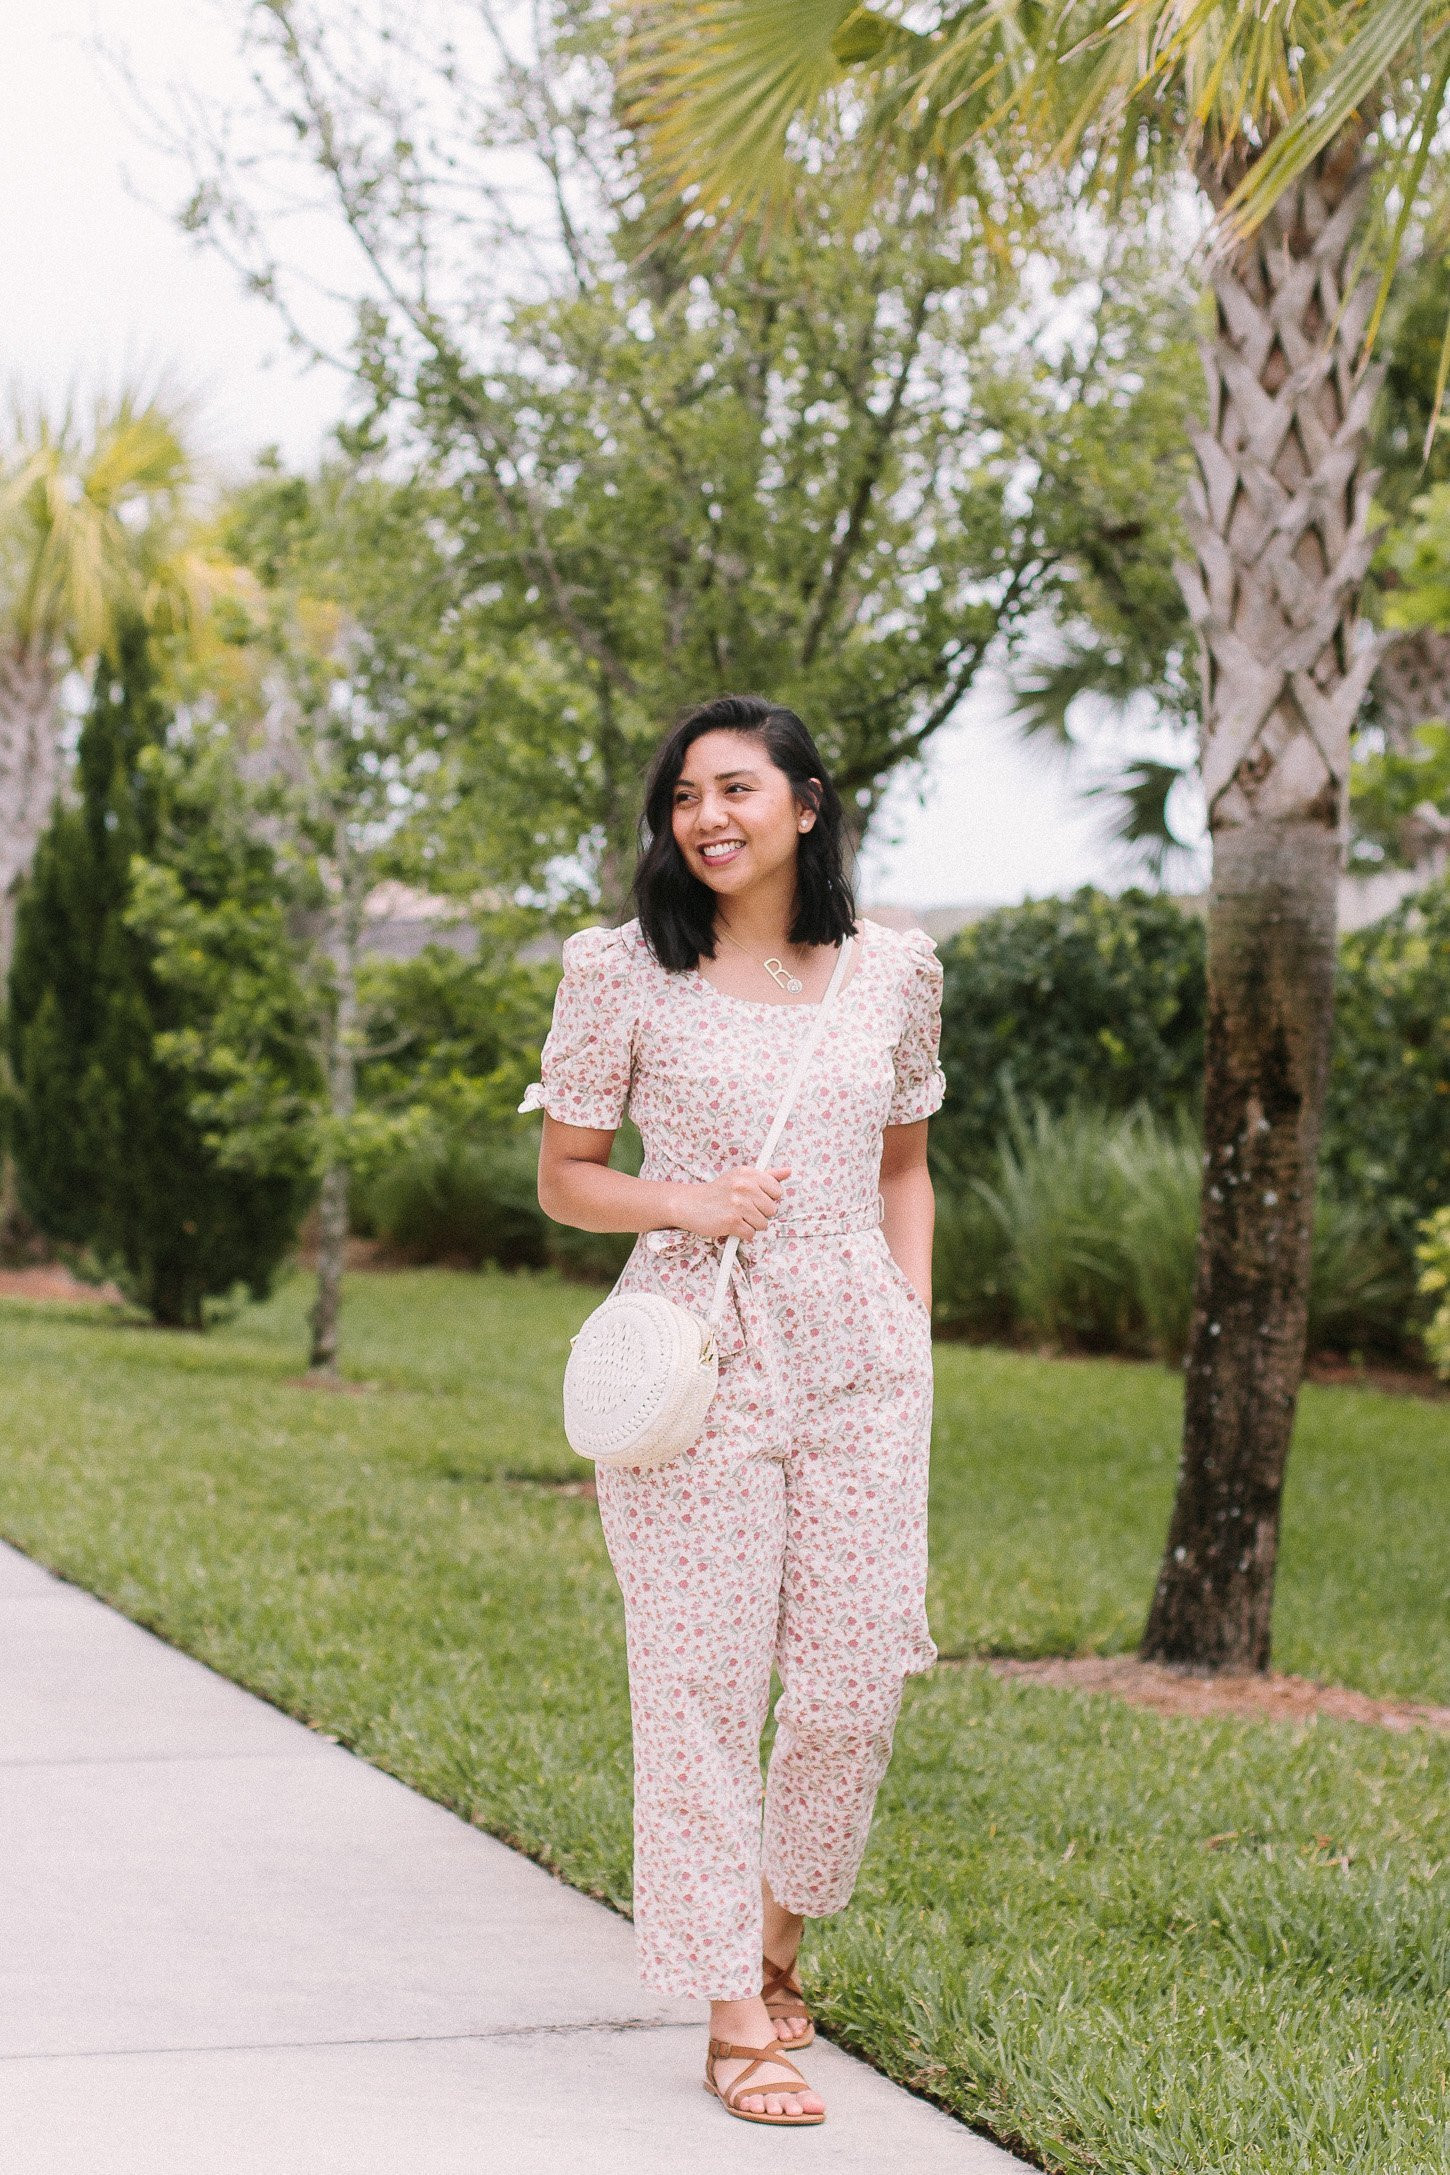 b2b68f7d7feb The Floral Print Jumpsuit That You Need This Spring. Gal Meets Glam  Jumpsuits. Best